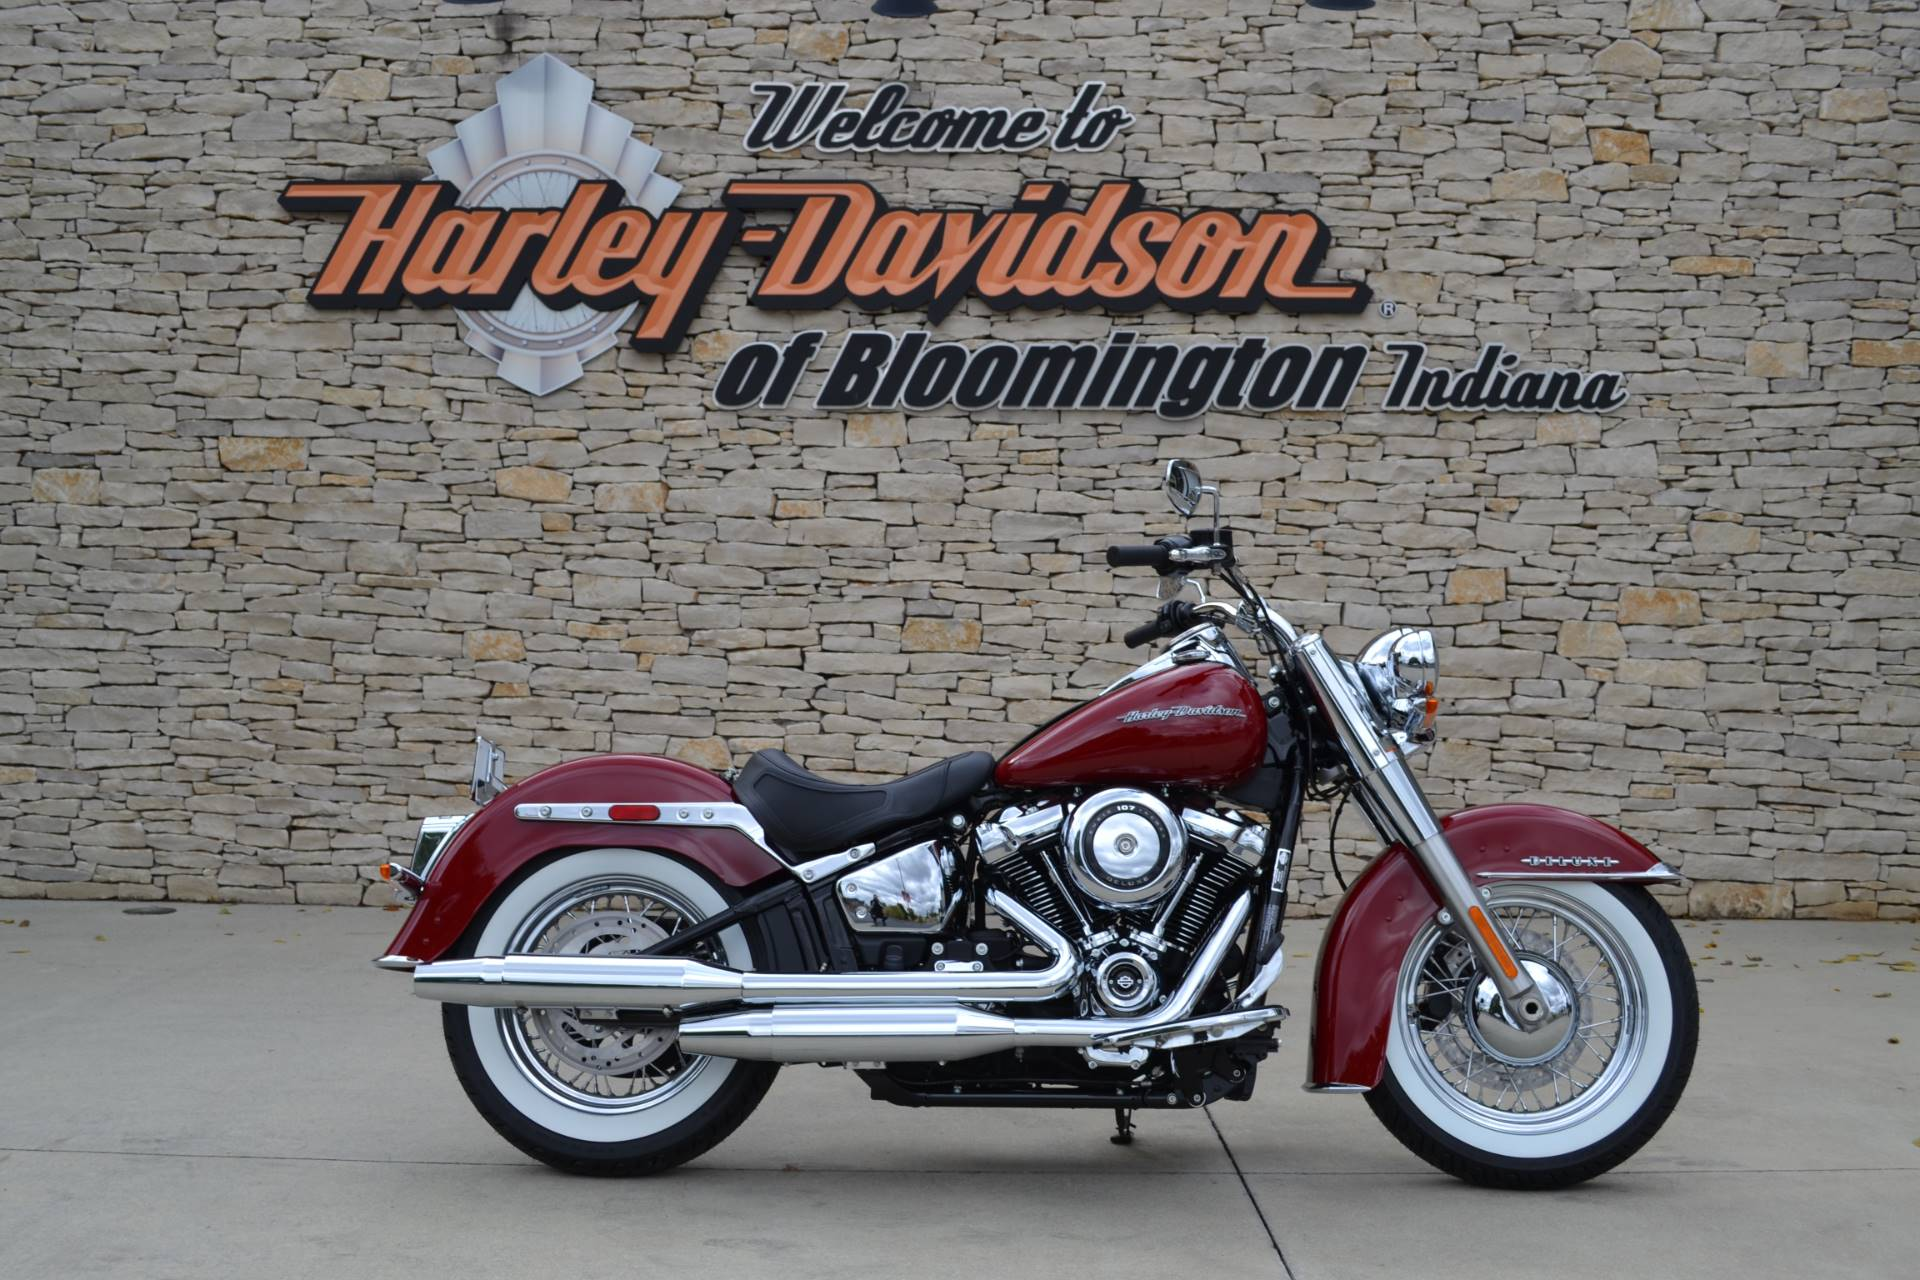 2020 Harley-Davidson Deluxe in Bloomington, Indiana - Photo 1